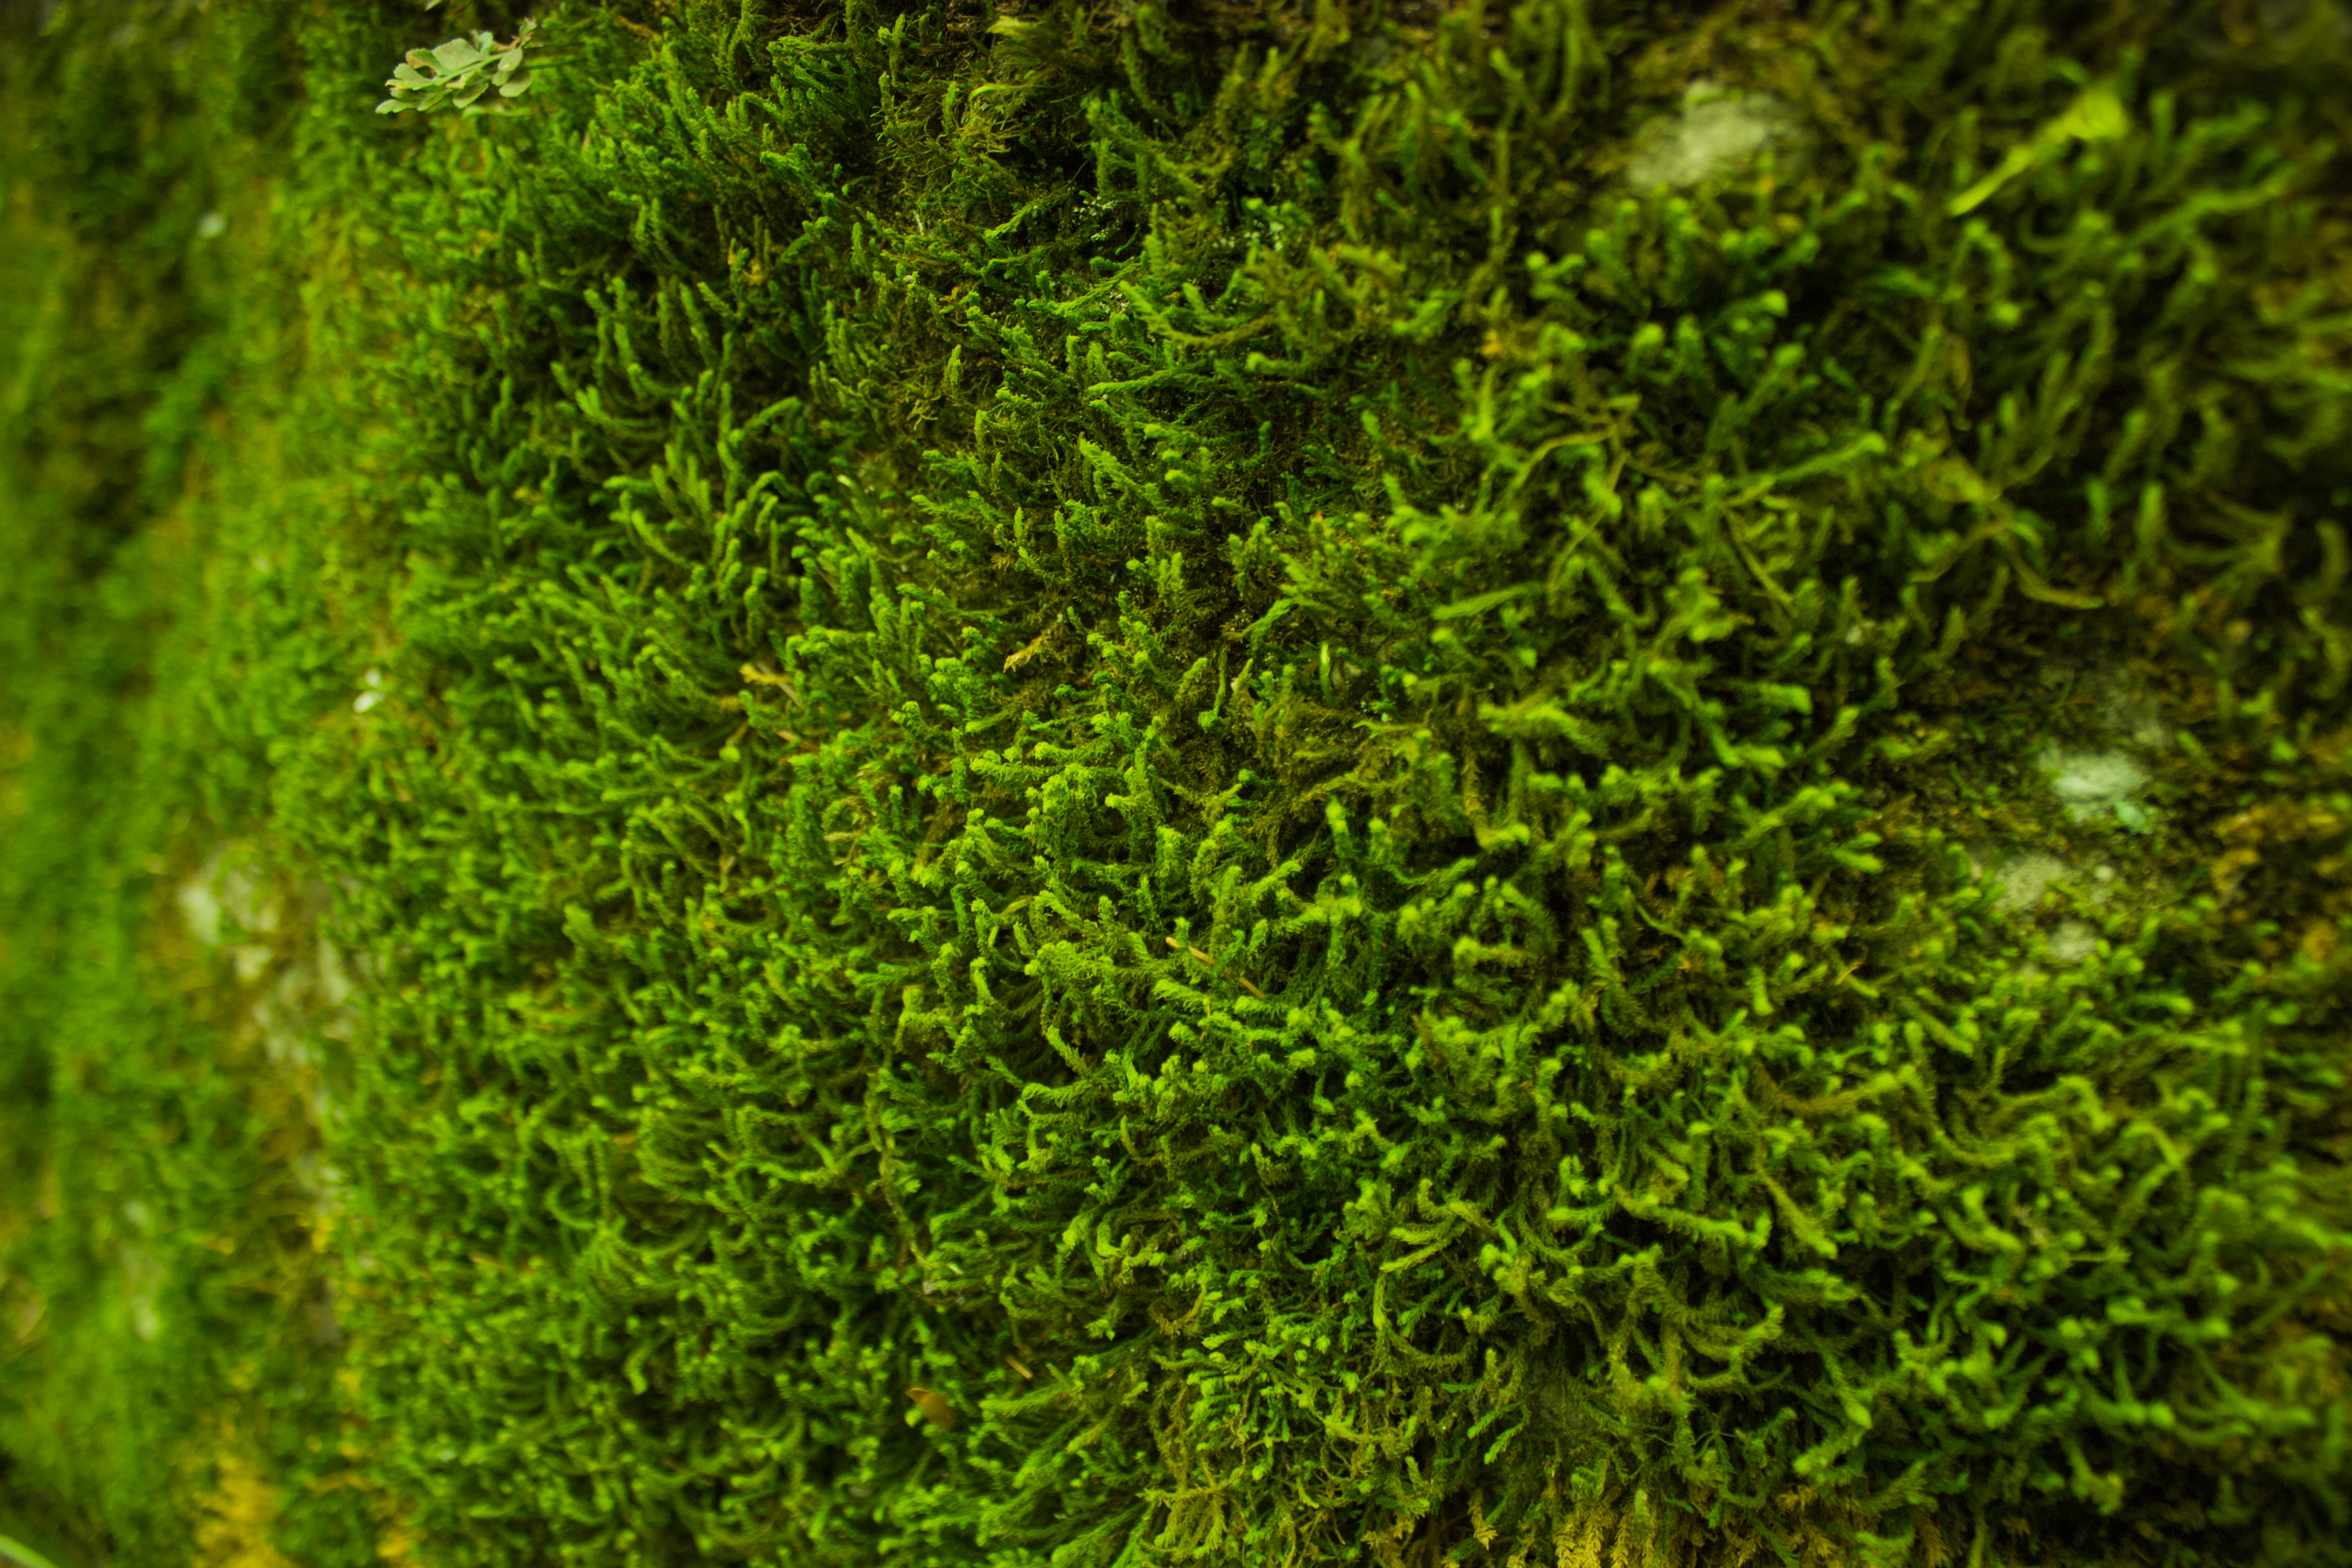 Free stock photo of closeup green moss for Where to buy photography